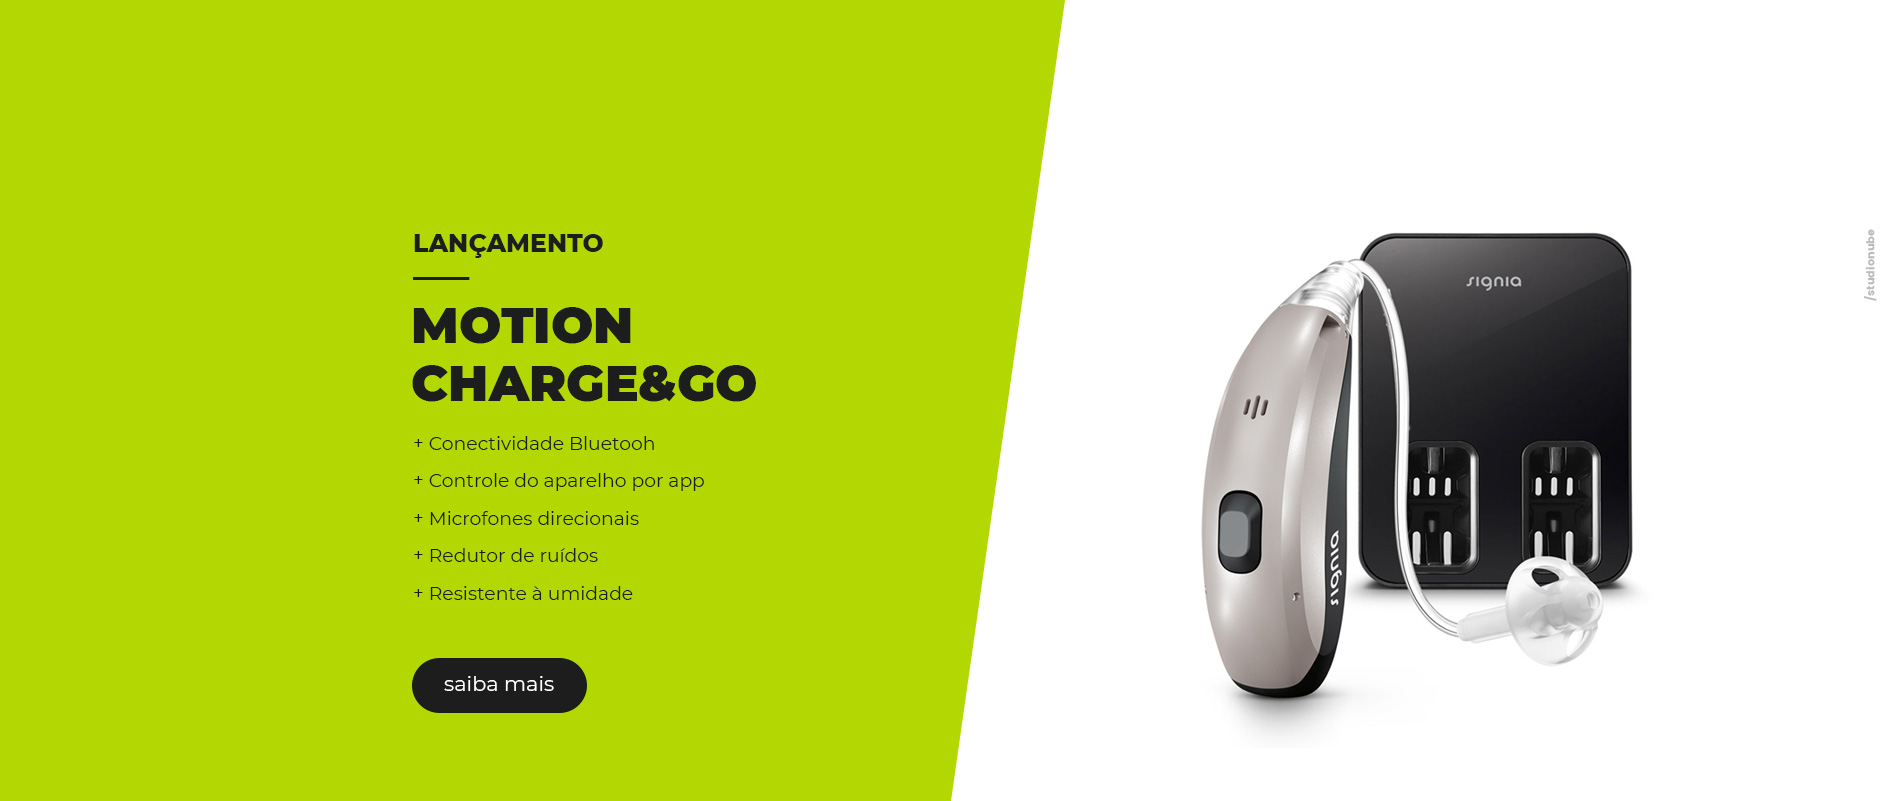 Motion Charge&GO